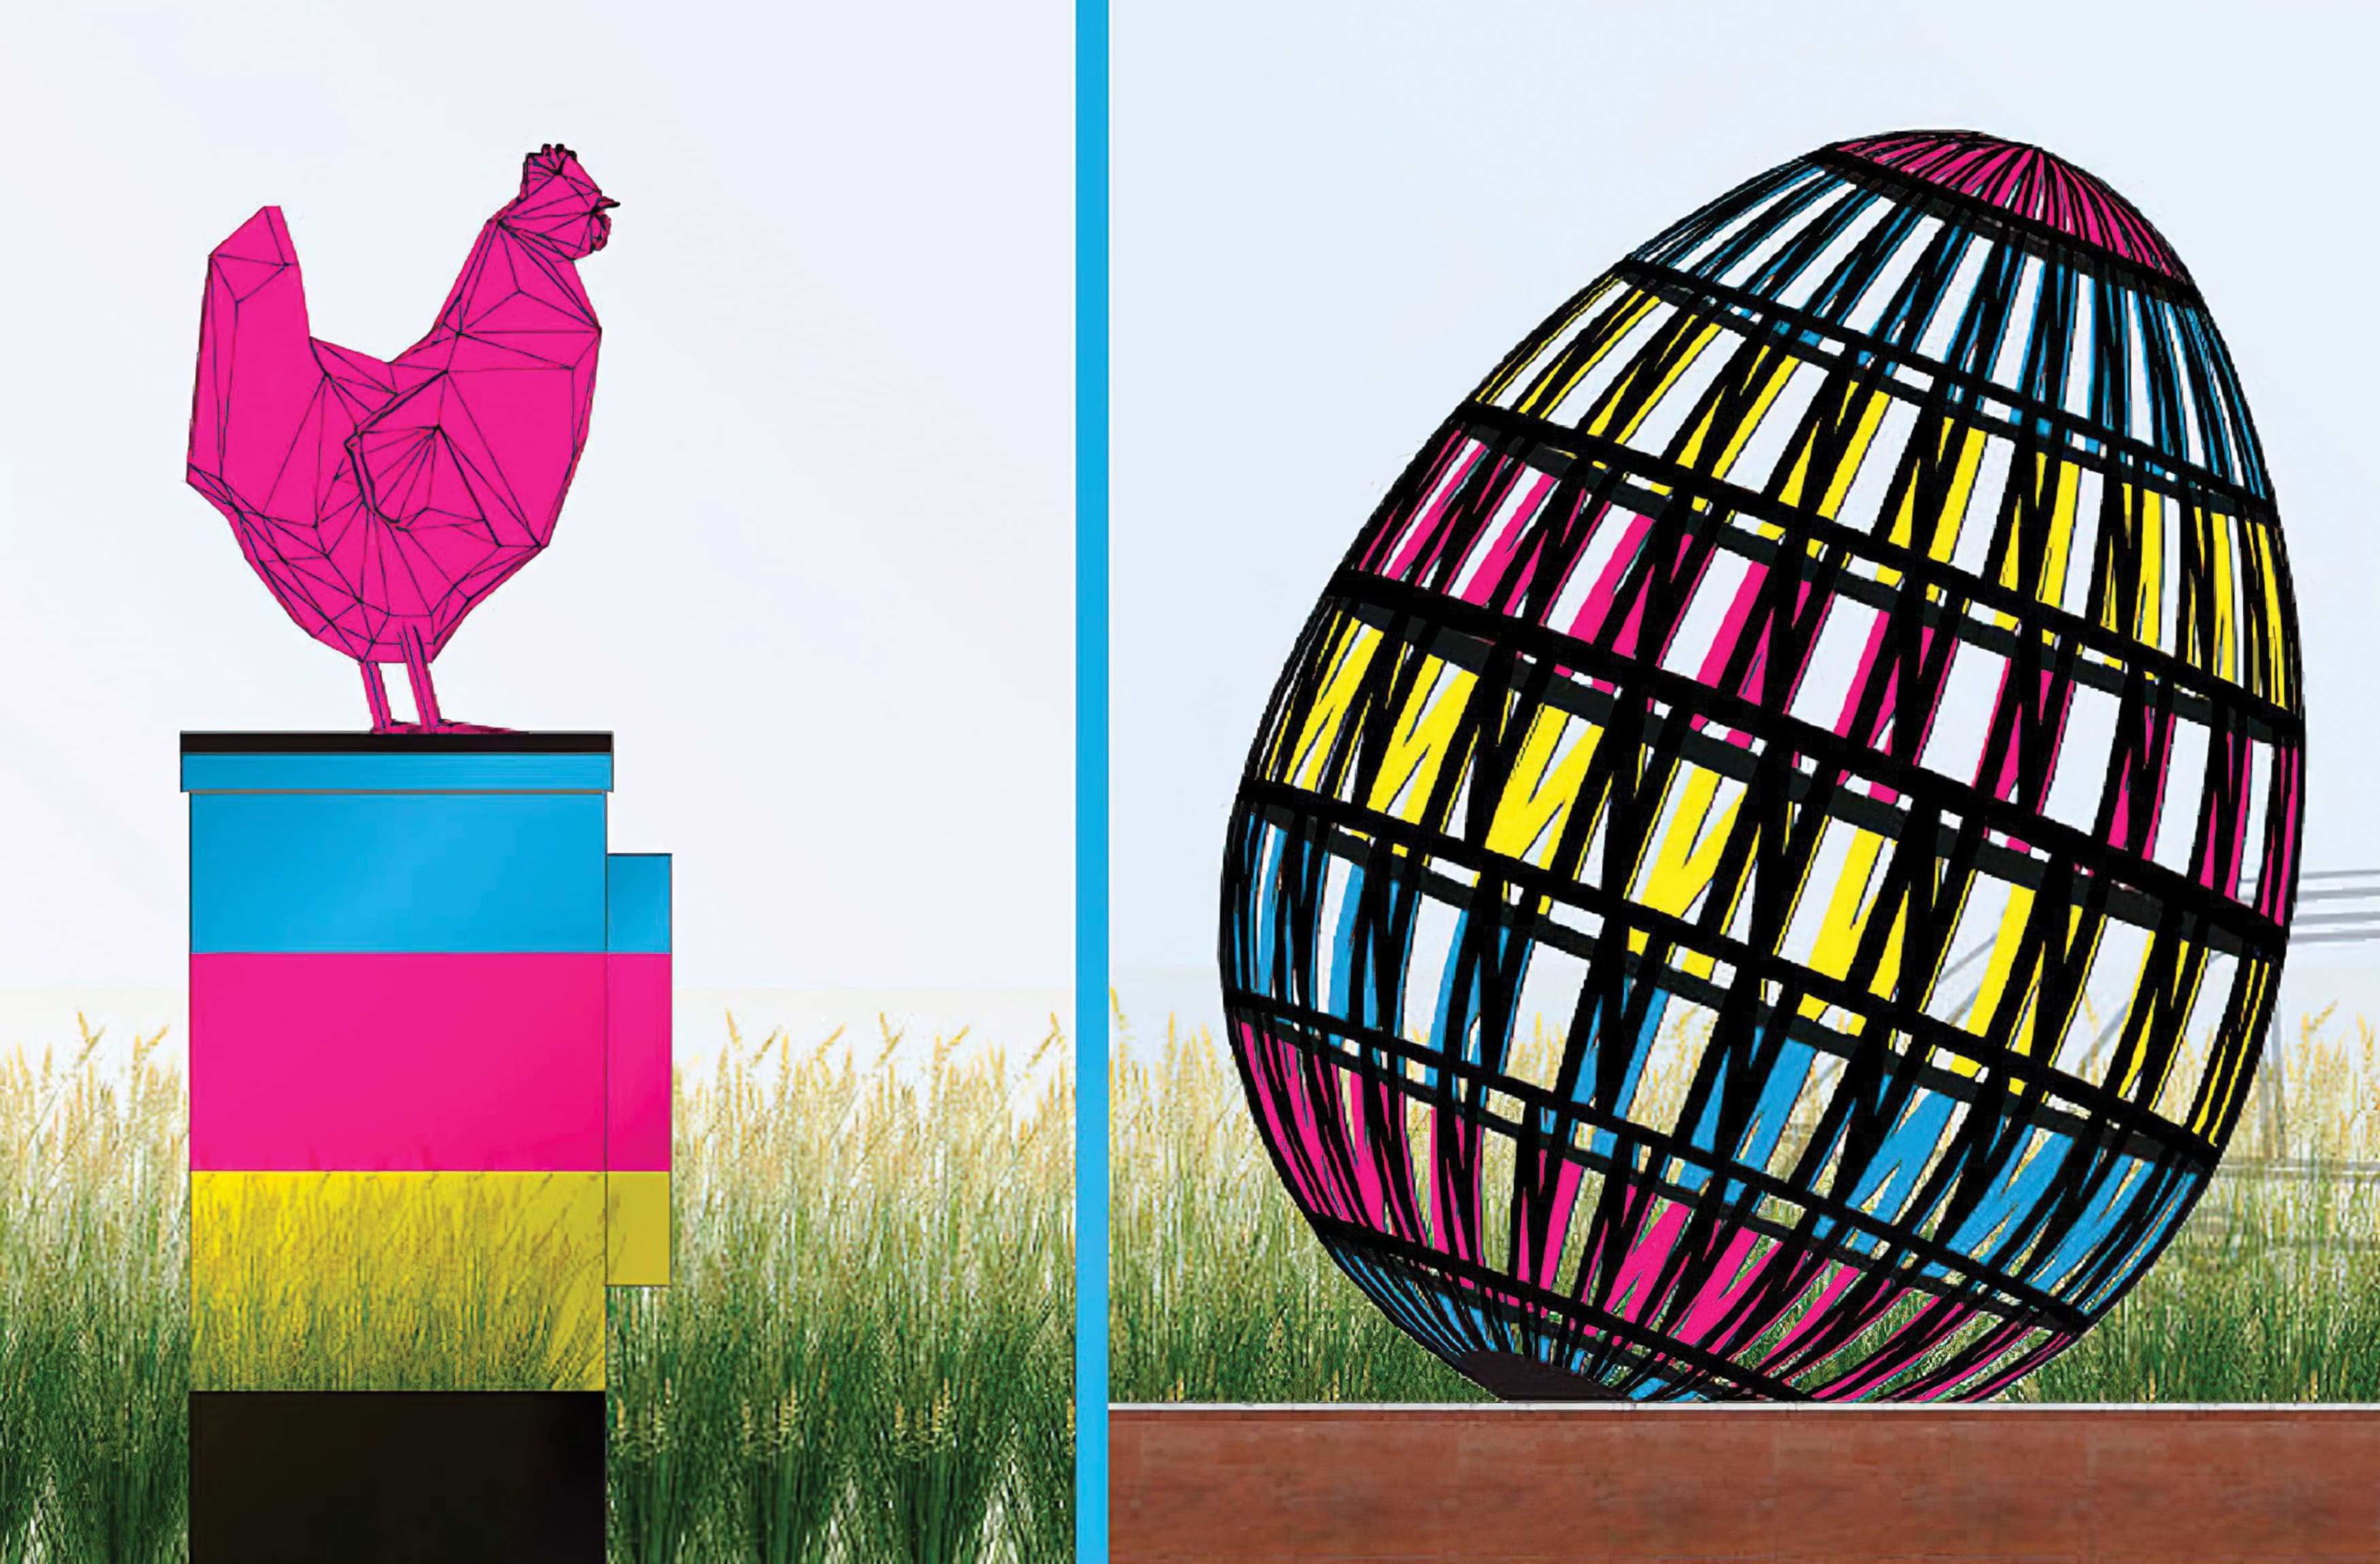 The Chicken and the Egg, a sculptural installation serving as a gateway for the NoMa neighborhood in Washington, D.C.